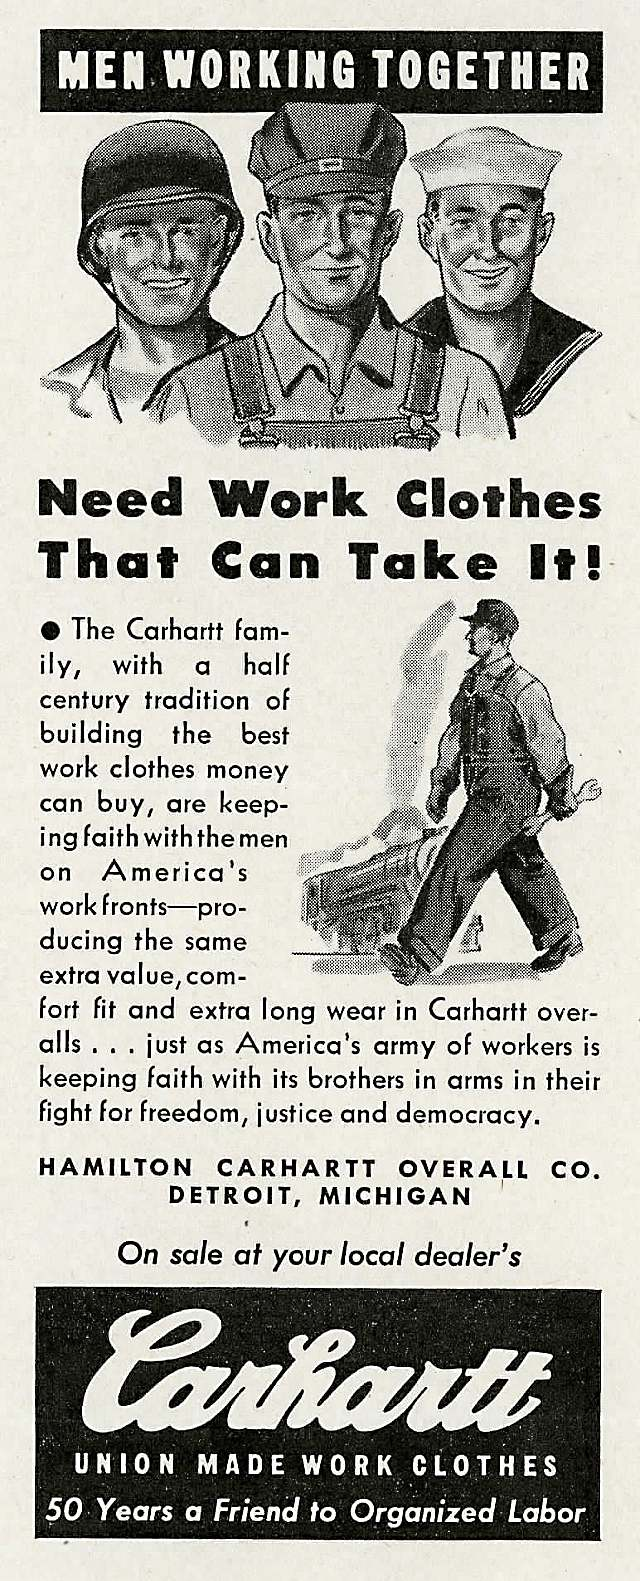 Carhartt ad, November 1943